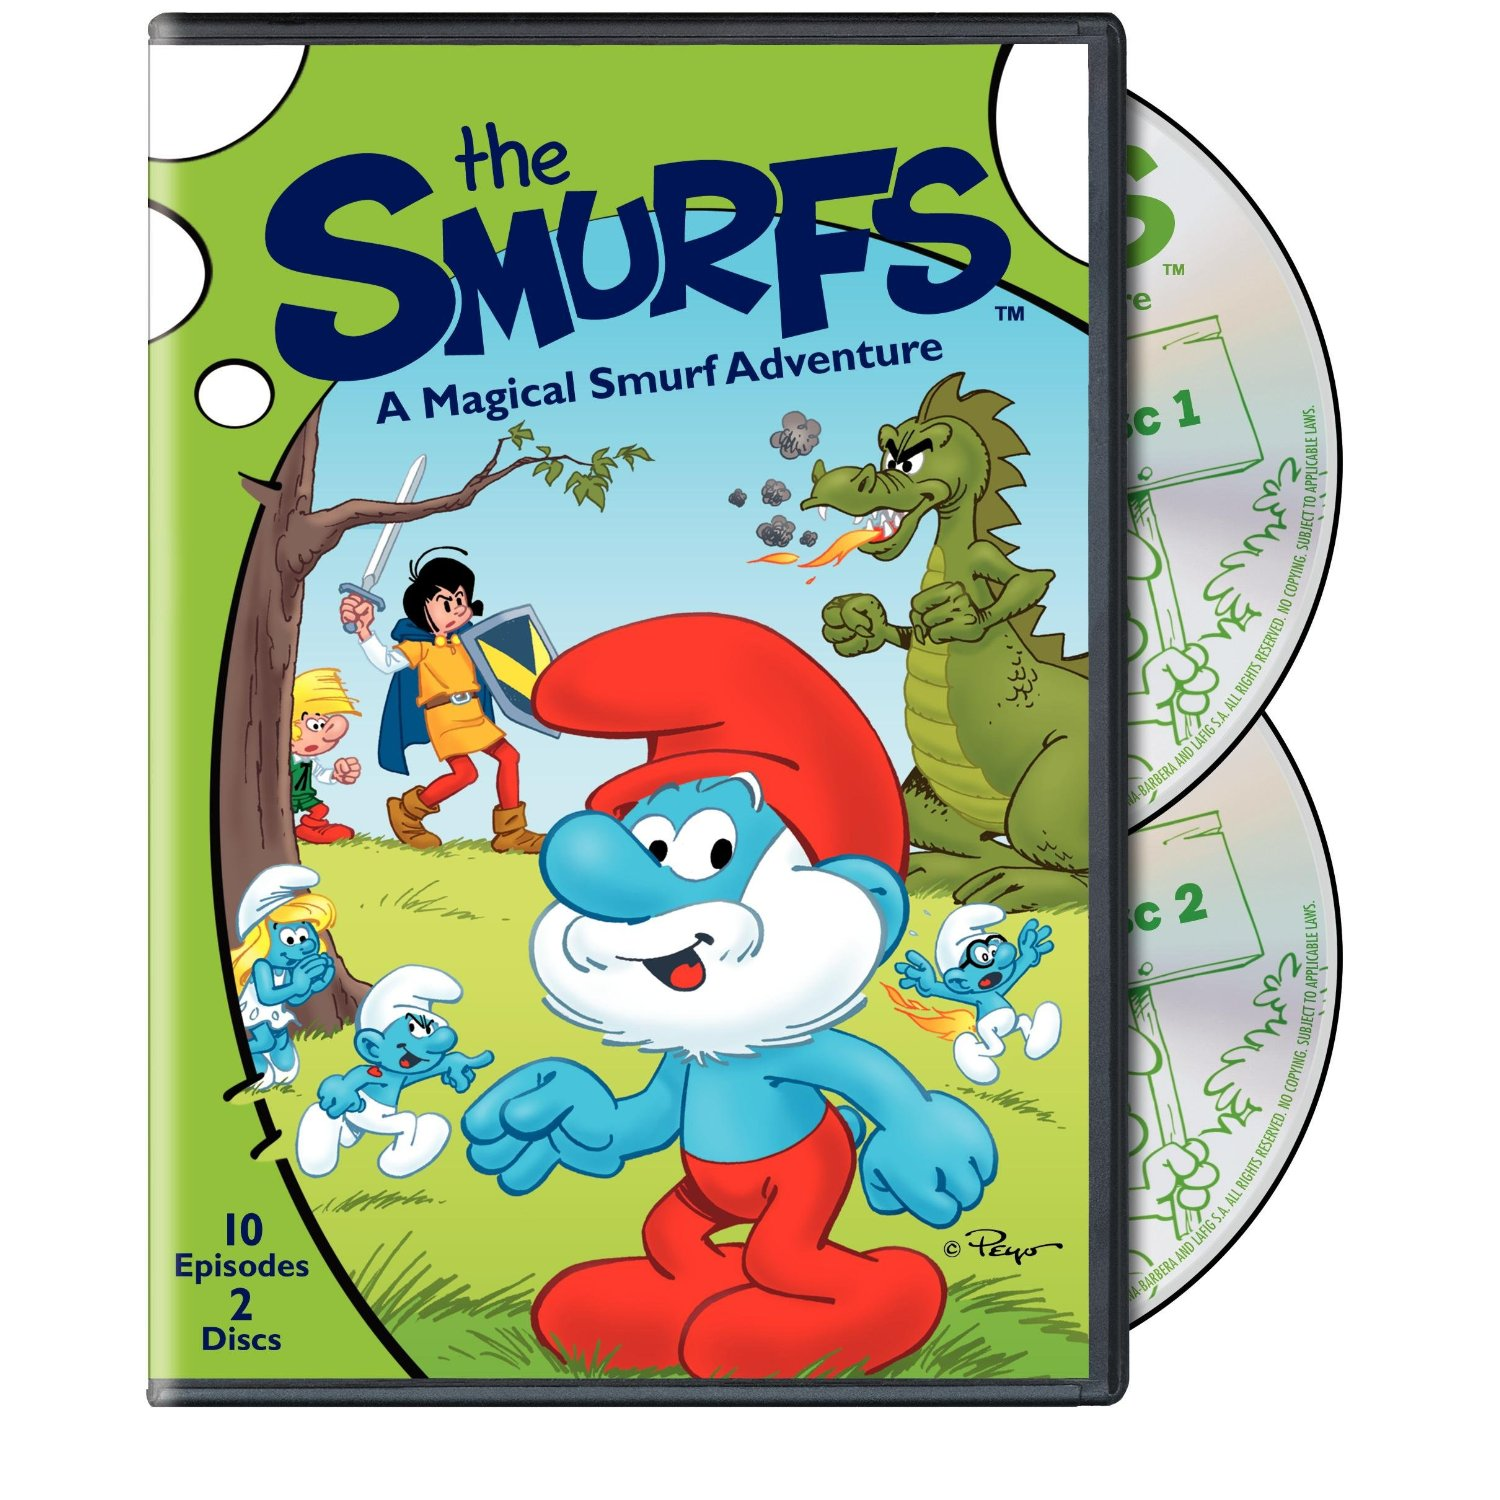 The Smurfs DVD {Review & Giveaway}